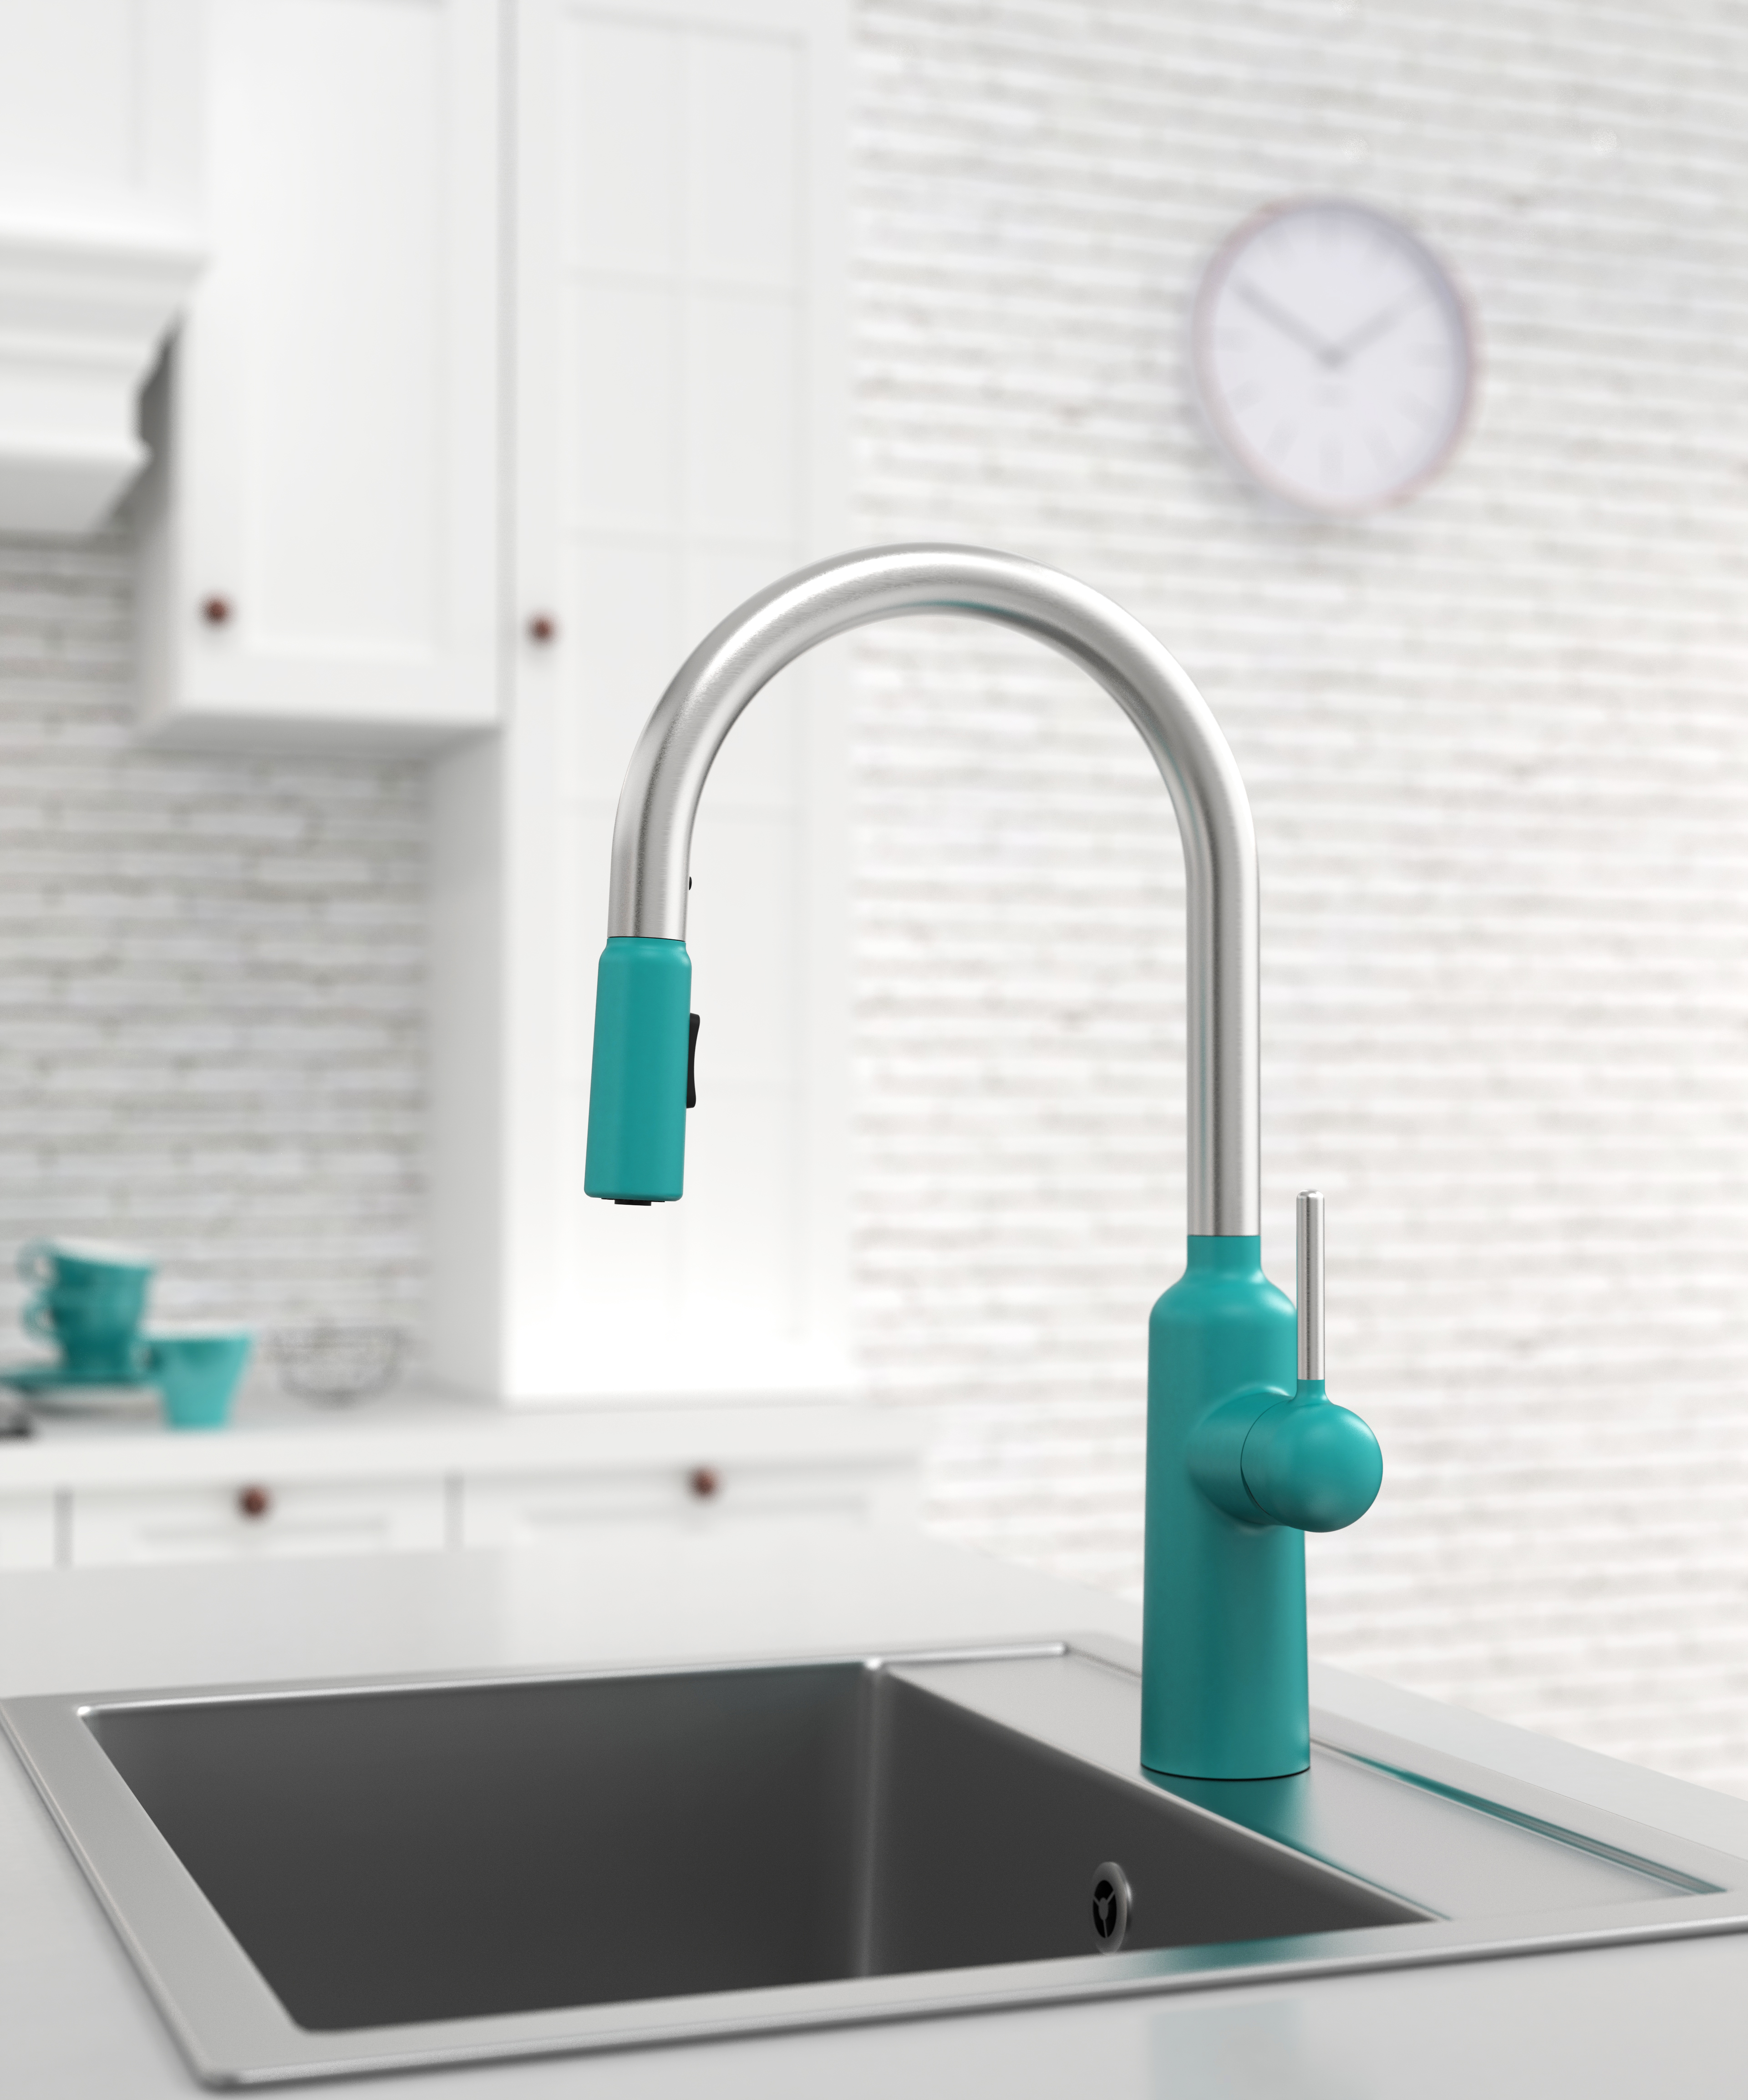 Chapter 2 Kitchen Faucet with Pull-out Sprayer